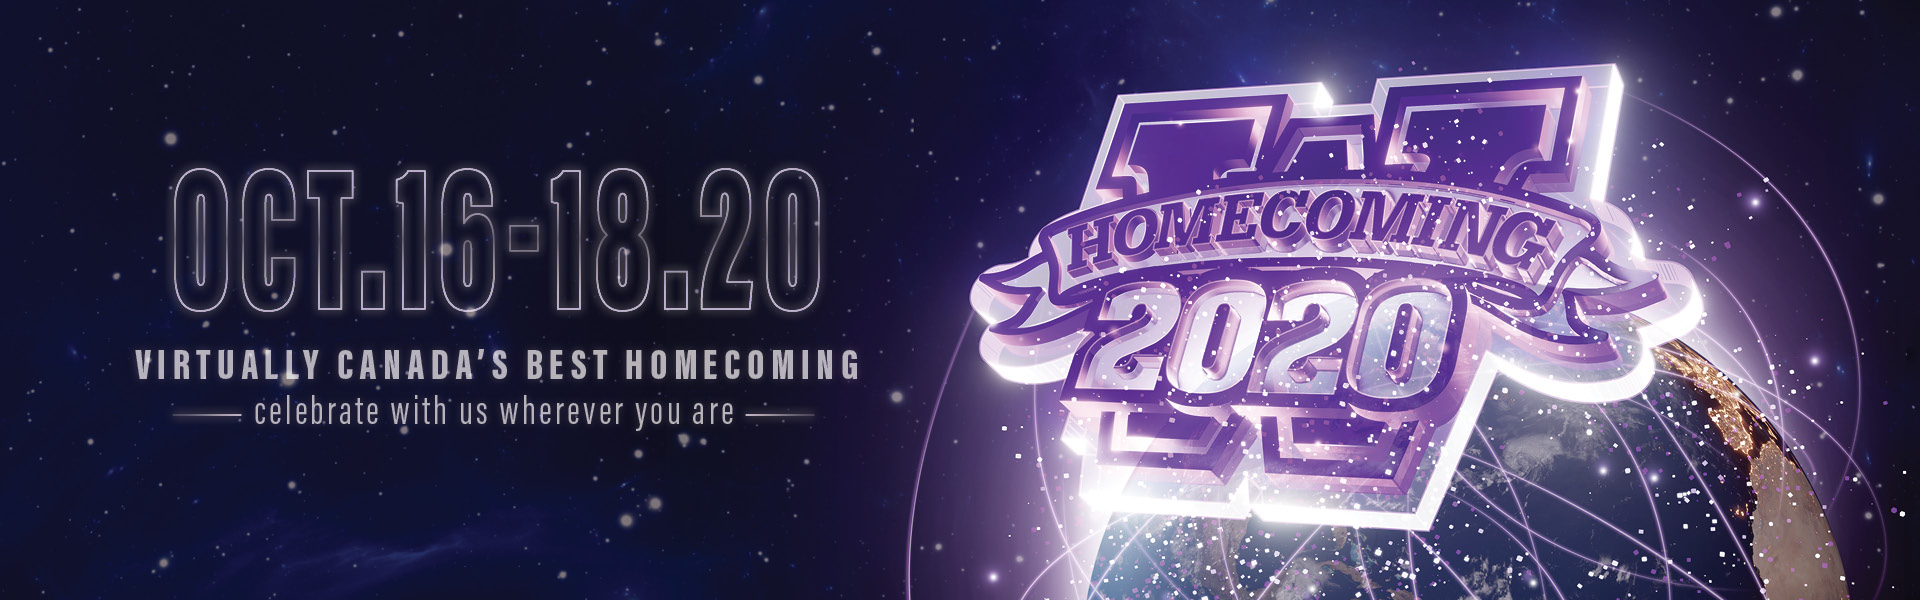 Homecoming 2020 Banner